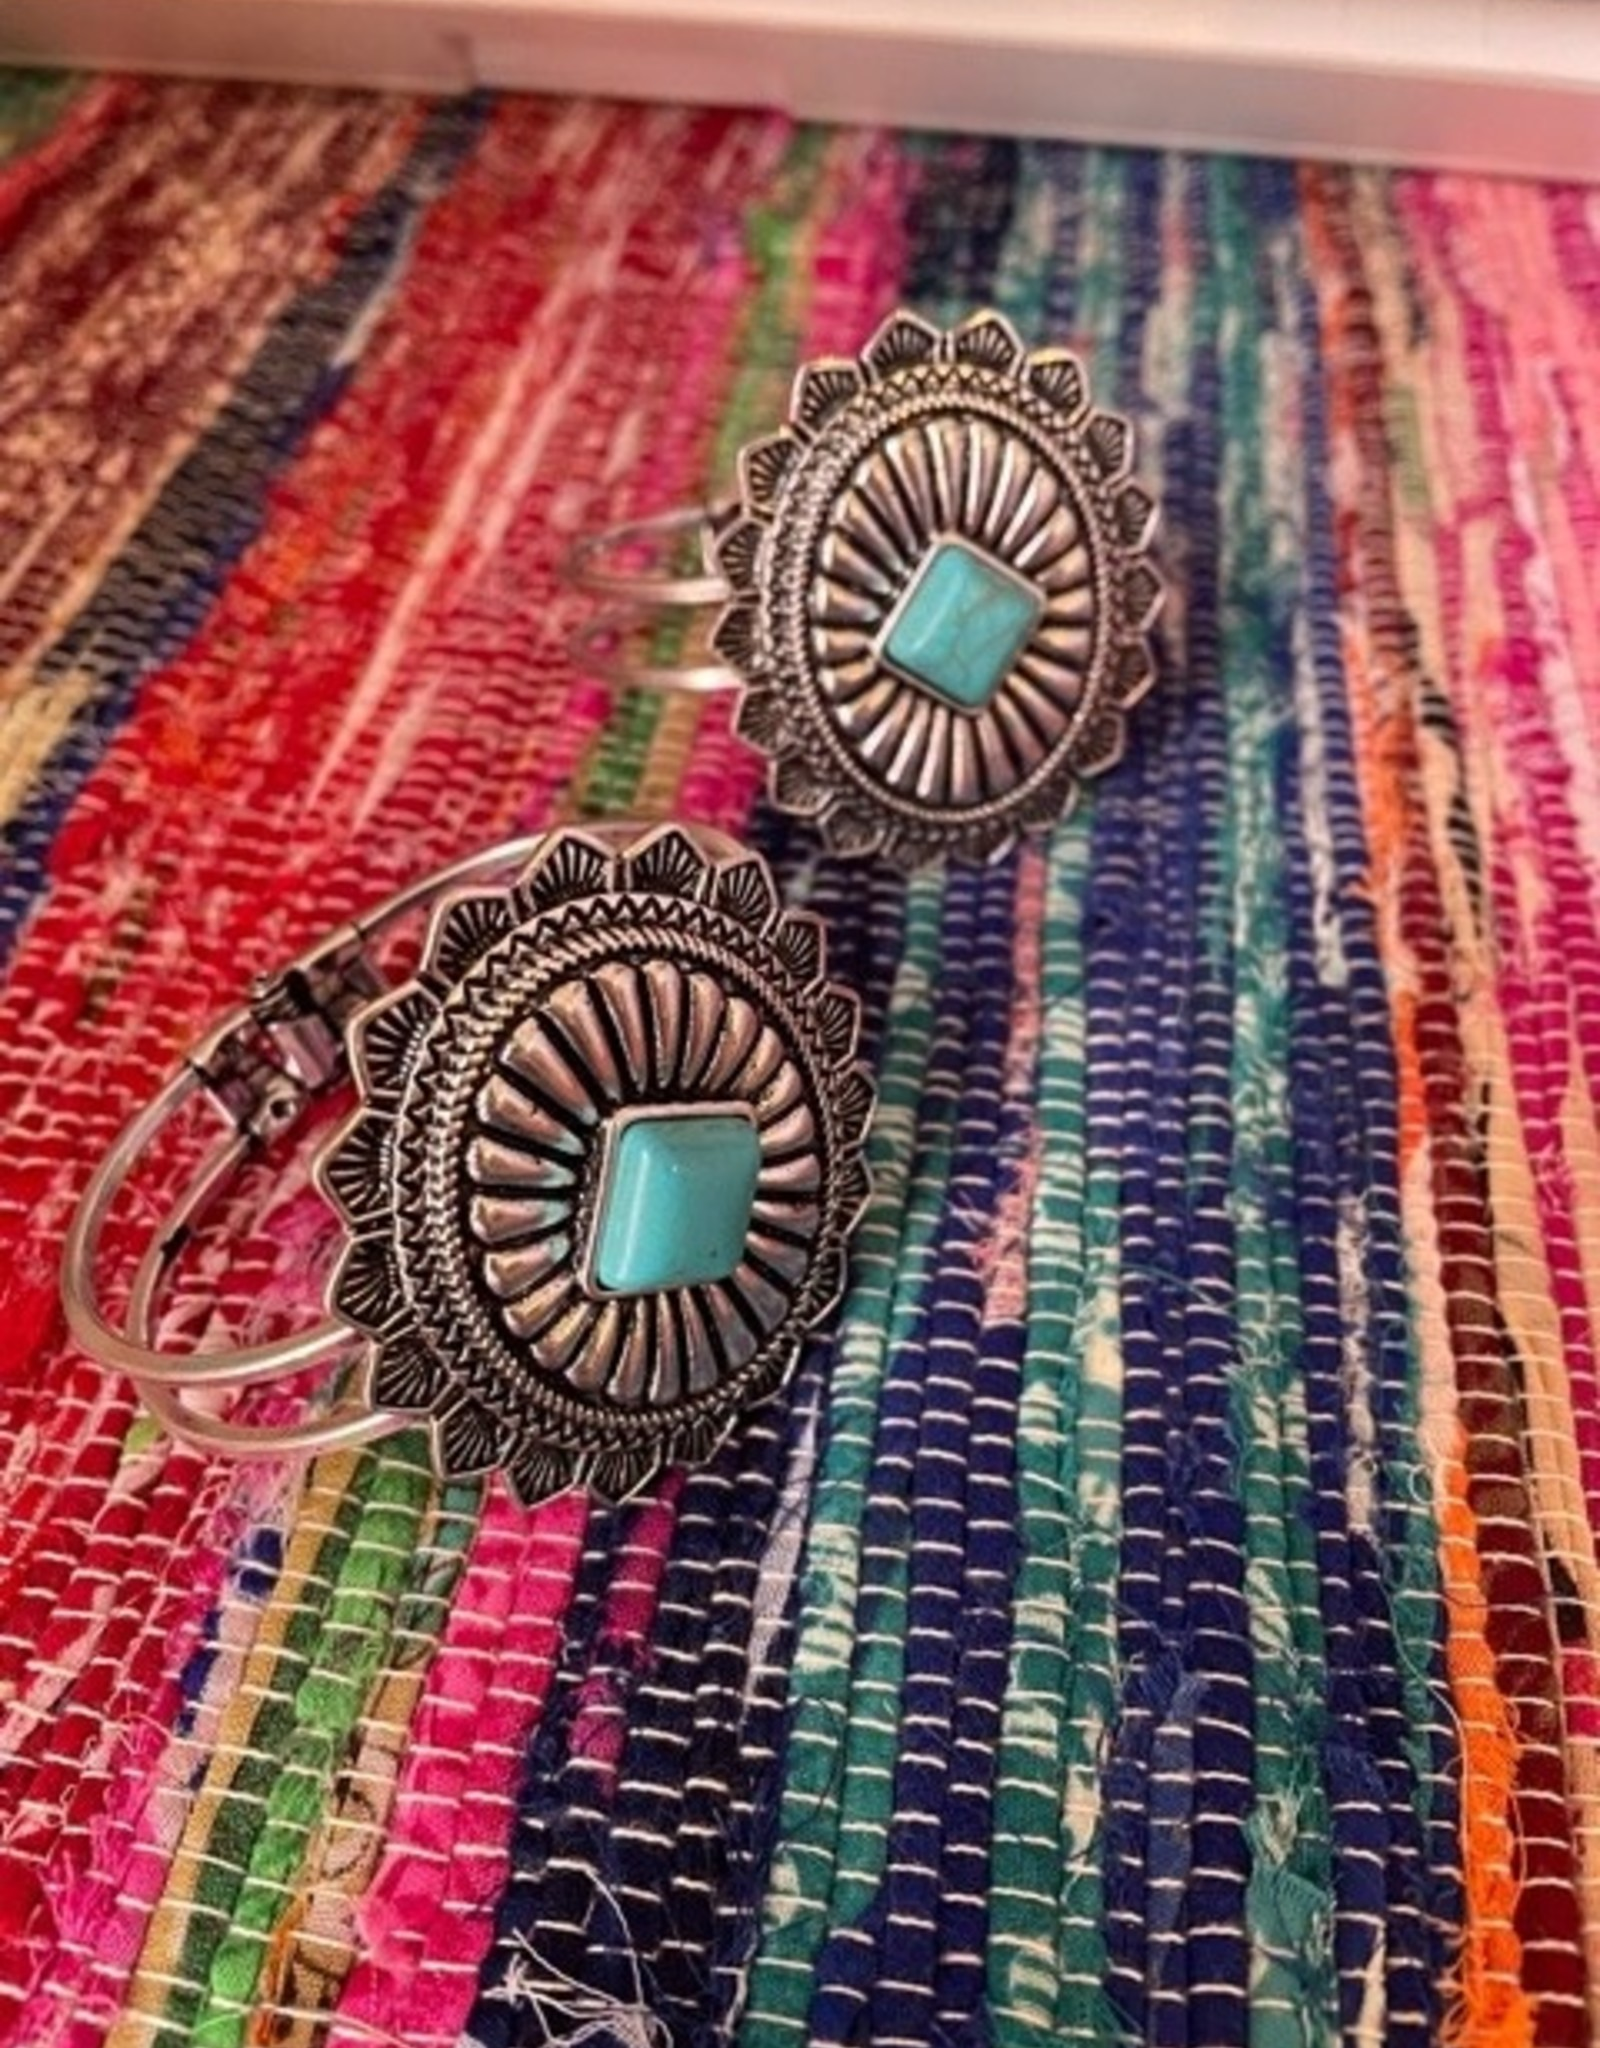 Wink Concho Bangle with faux turquoise inlay stone